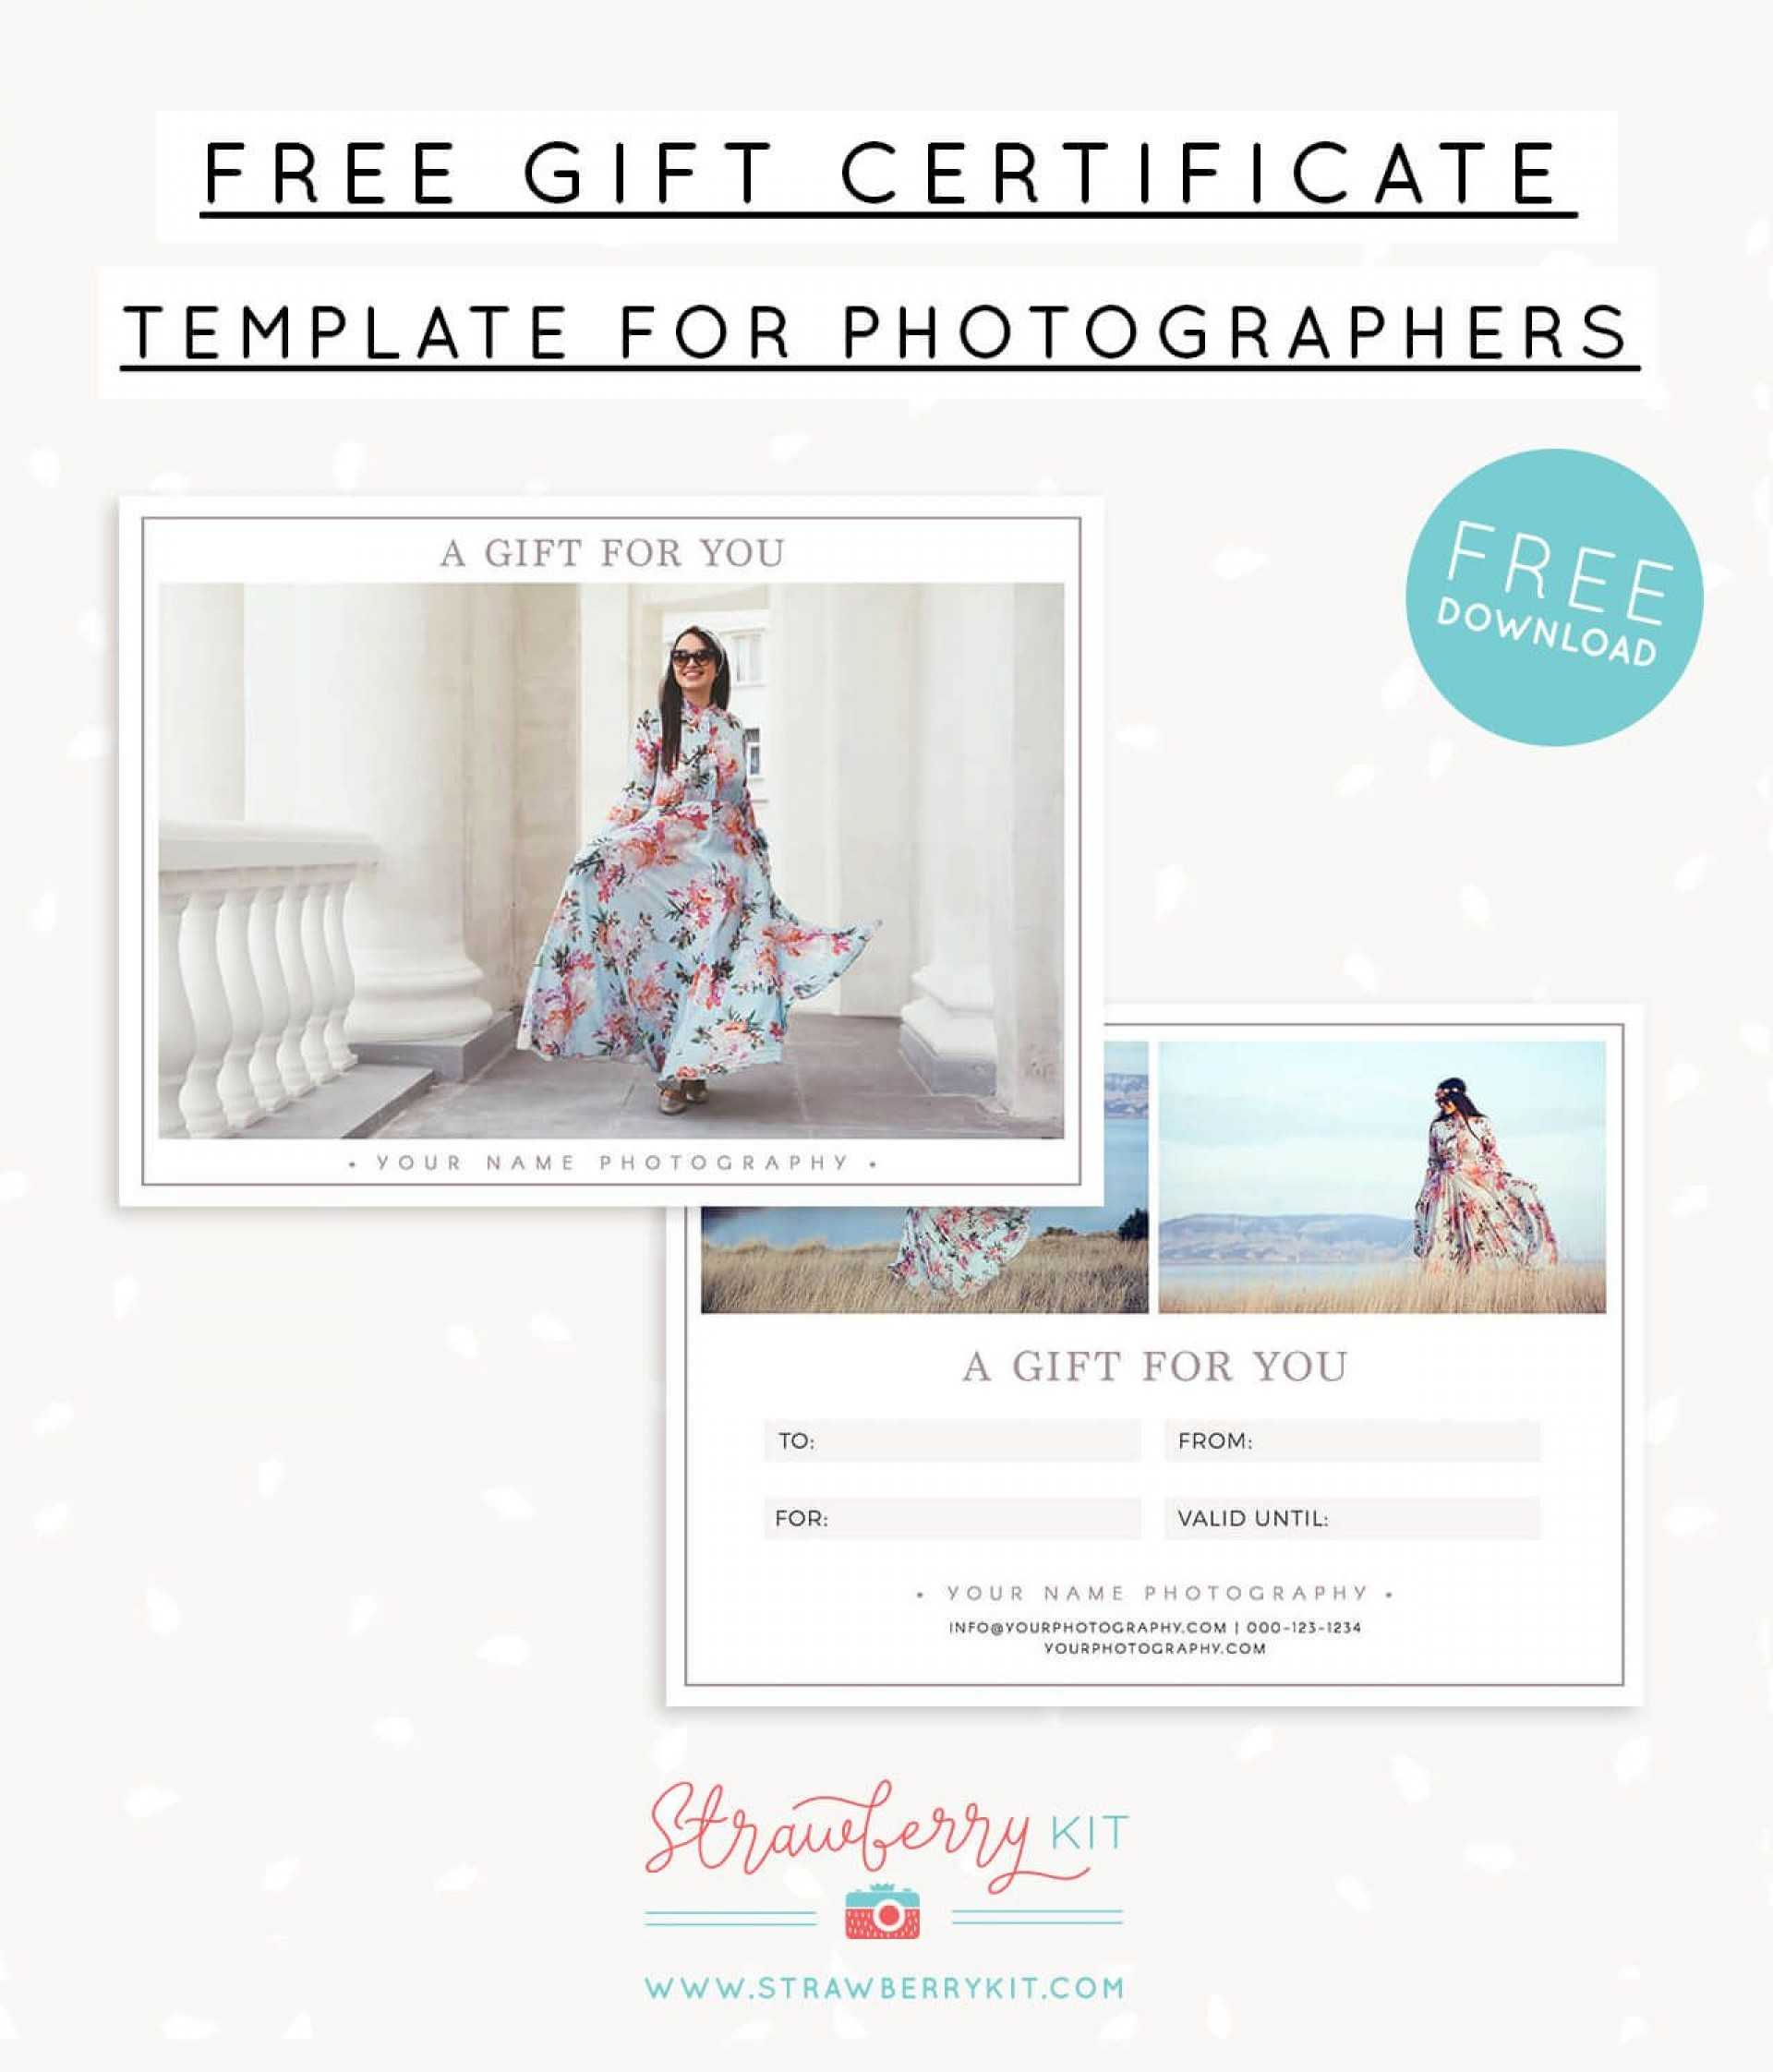 006 Breathtaking Photography Gift Certificate Template Photoshop Free Example 1920